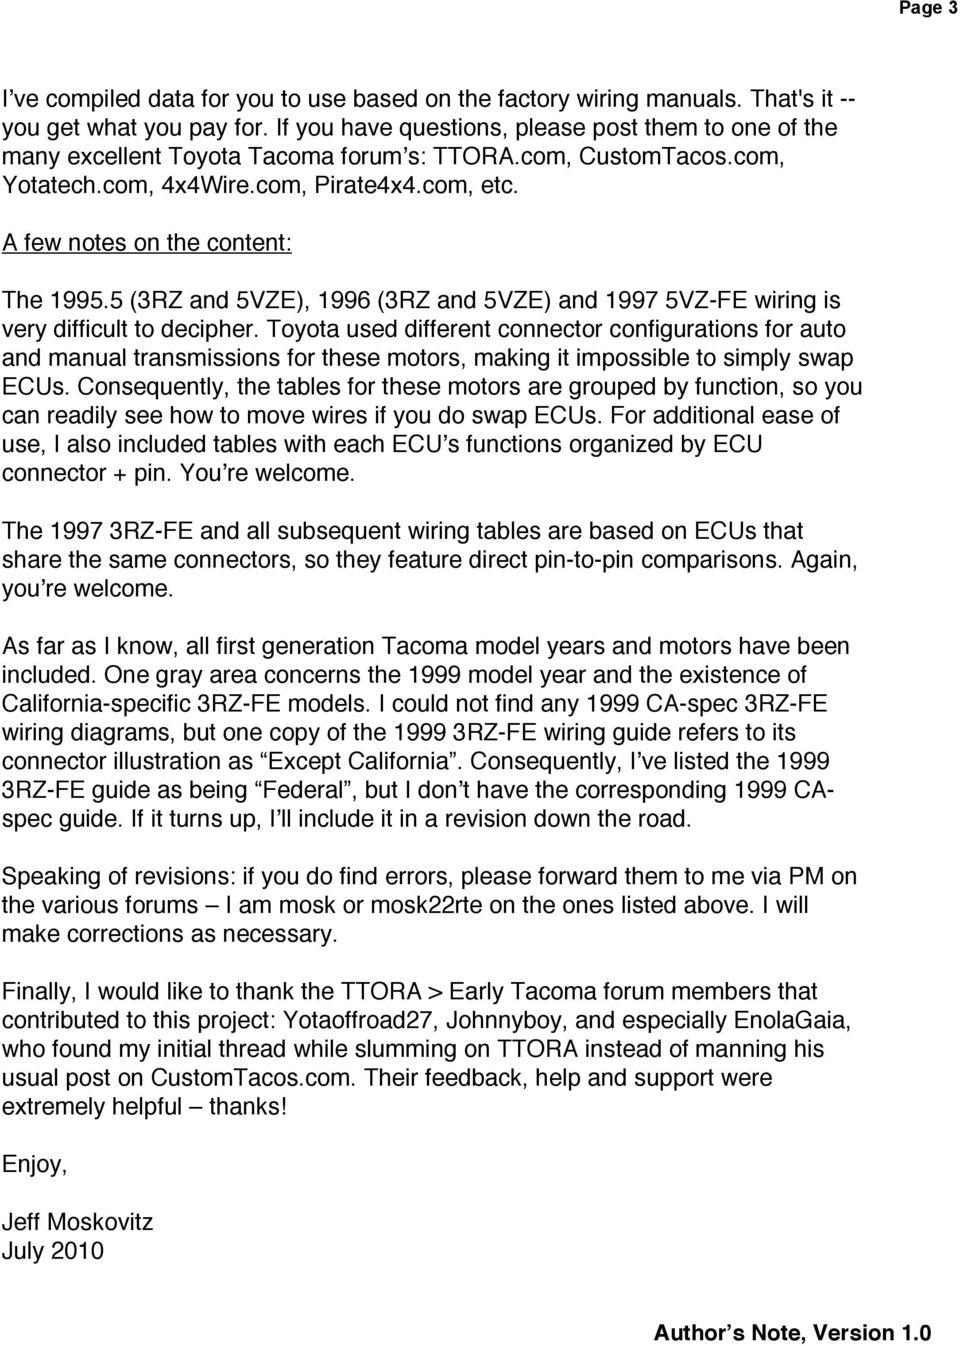 Ecu Pinout And Wiring Comparisons Toyota Tacoma Trucks Pdf 1992 Previa Diagram On A Few Notes The Content 19955 3rz 5vze 1996